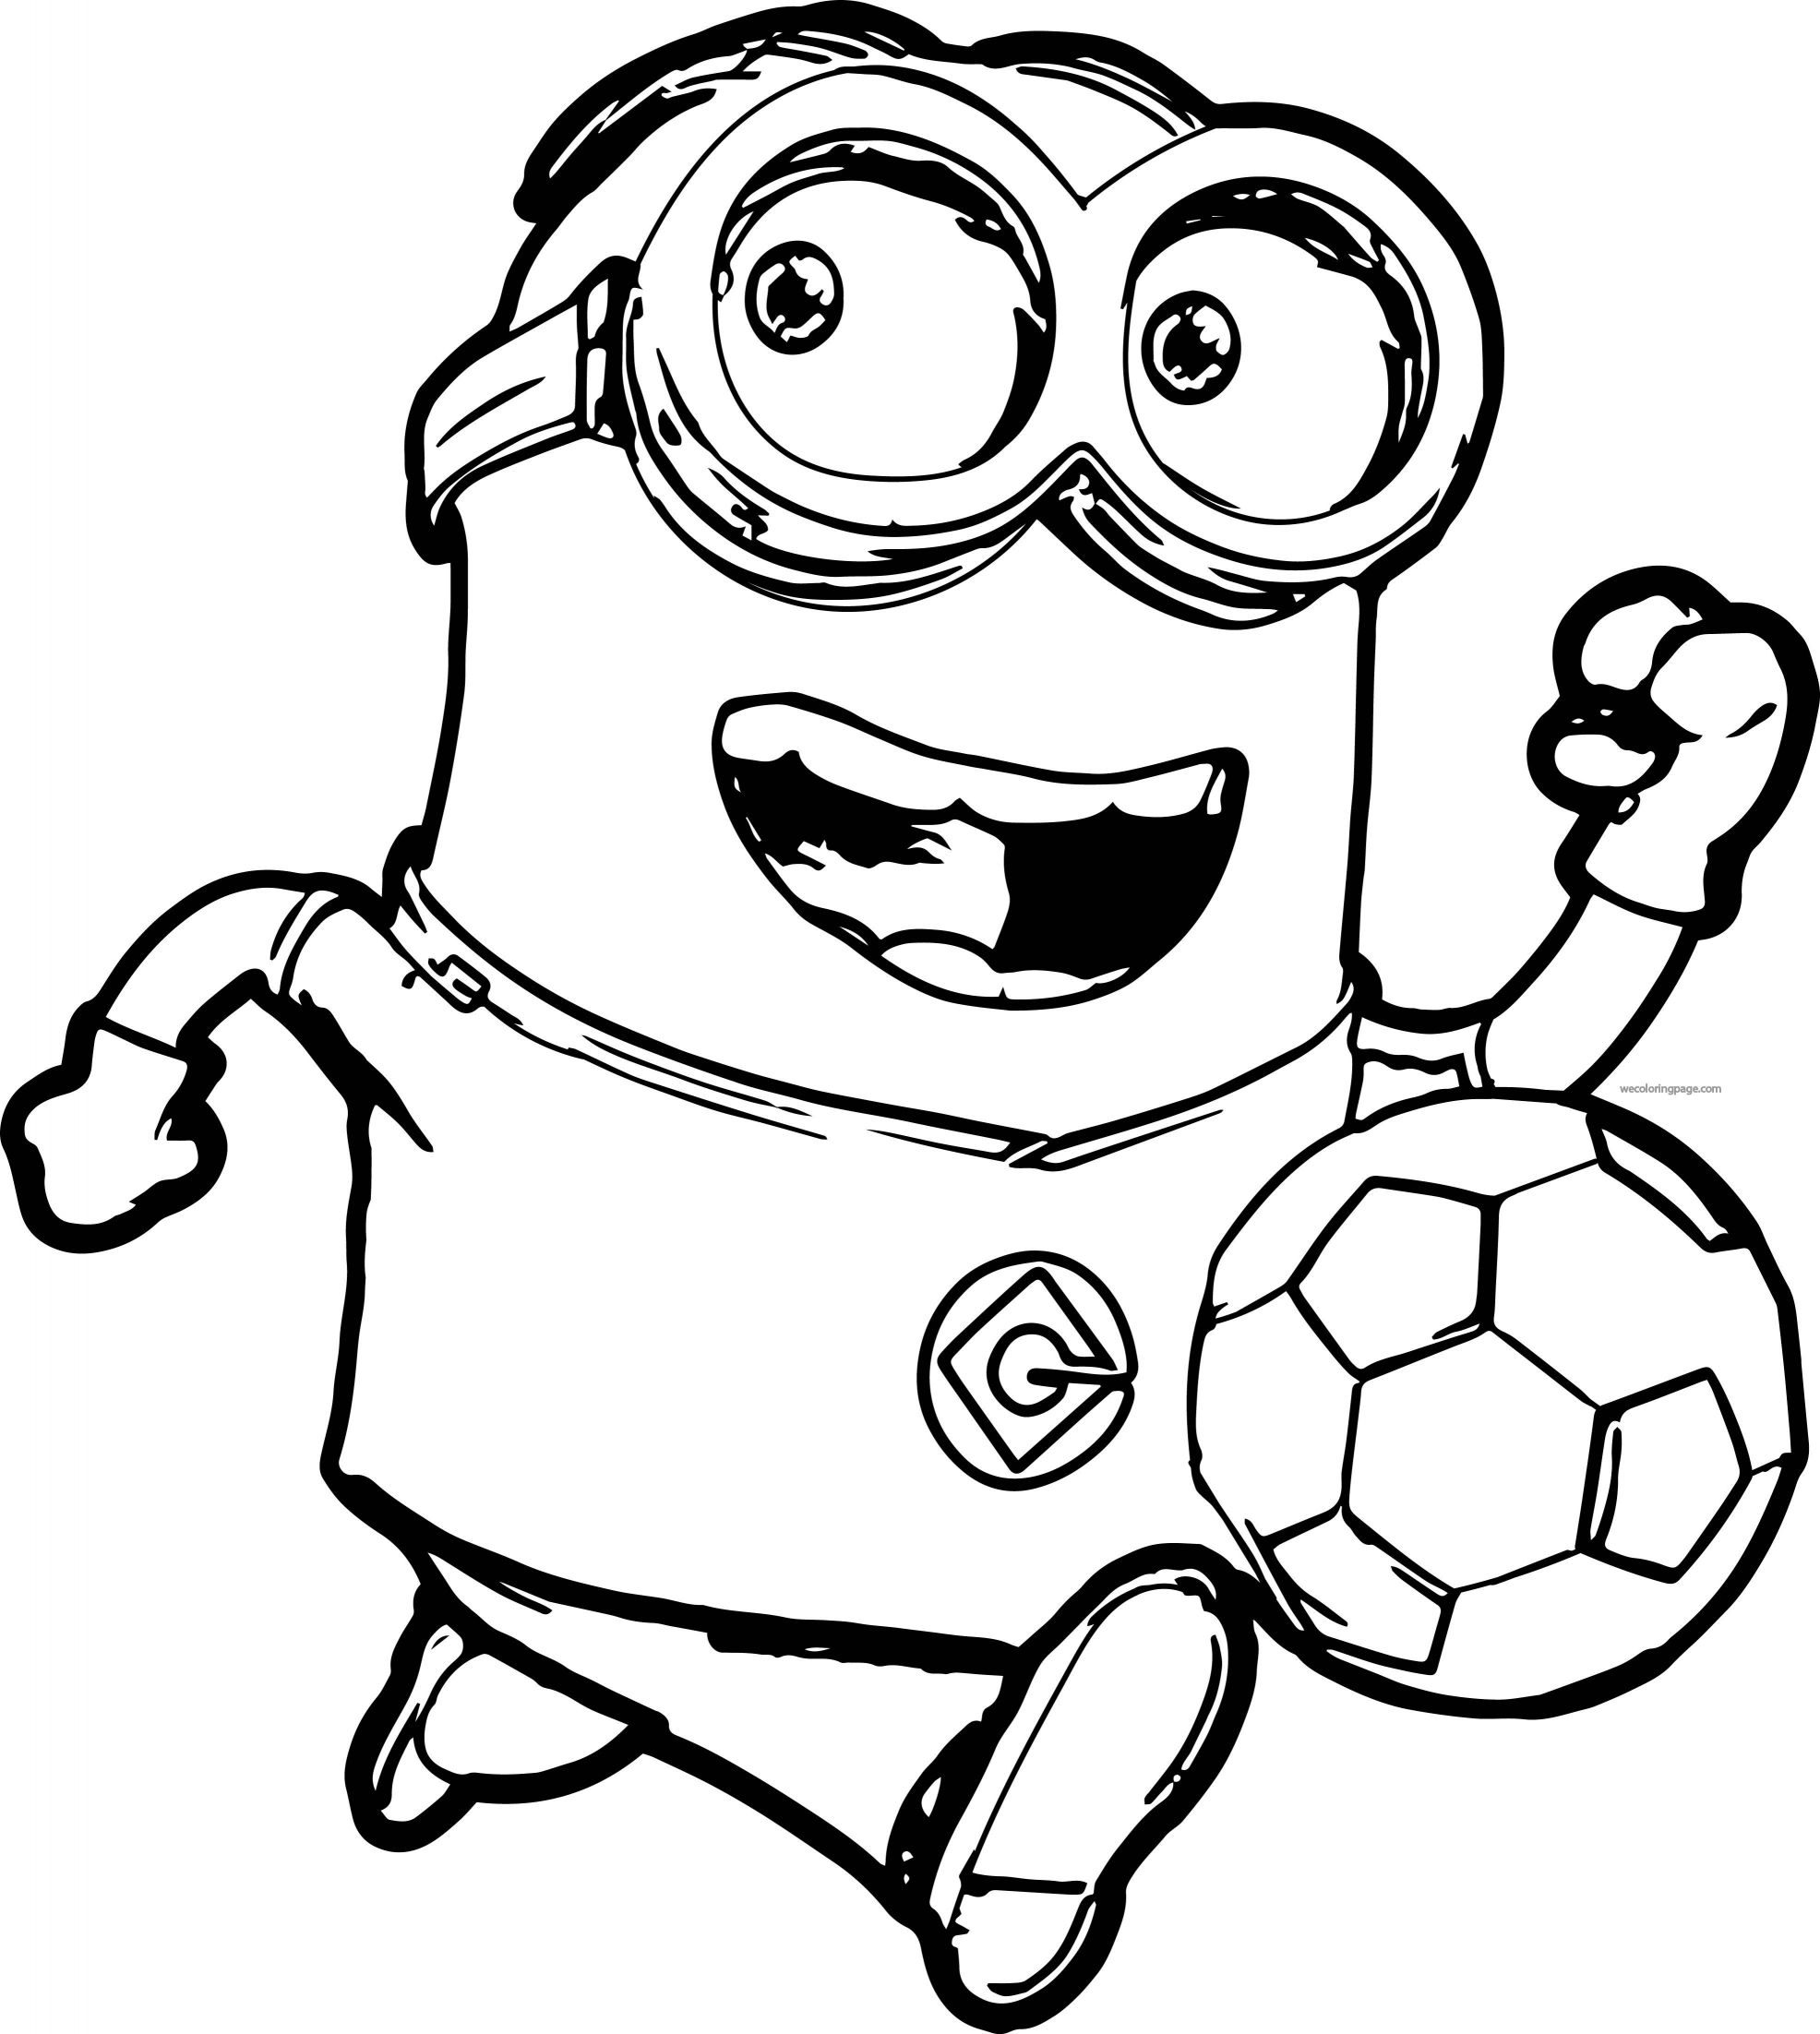 Minion Coloring Pages To Print Out